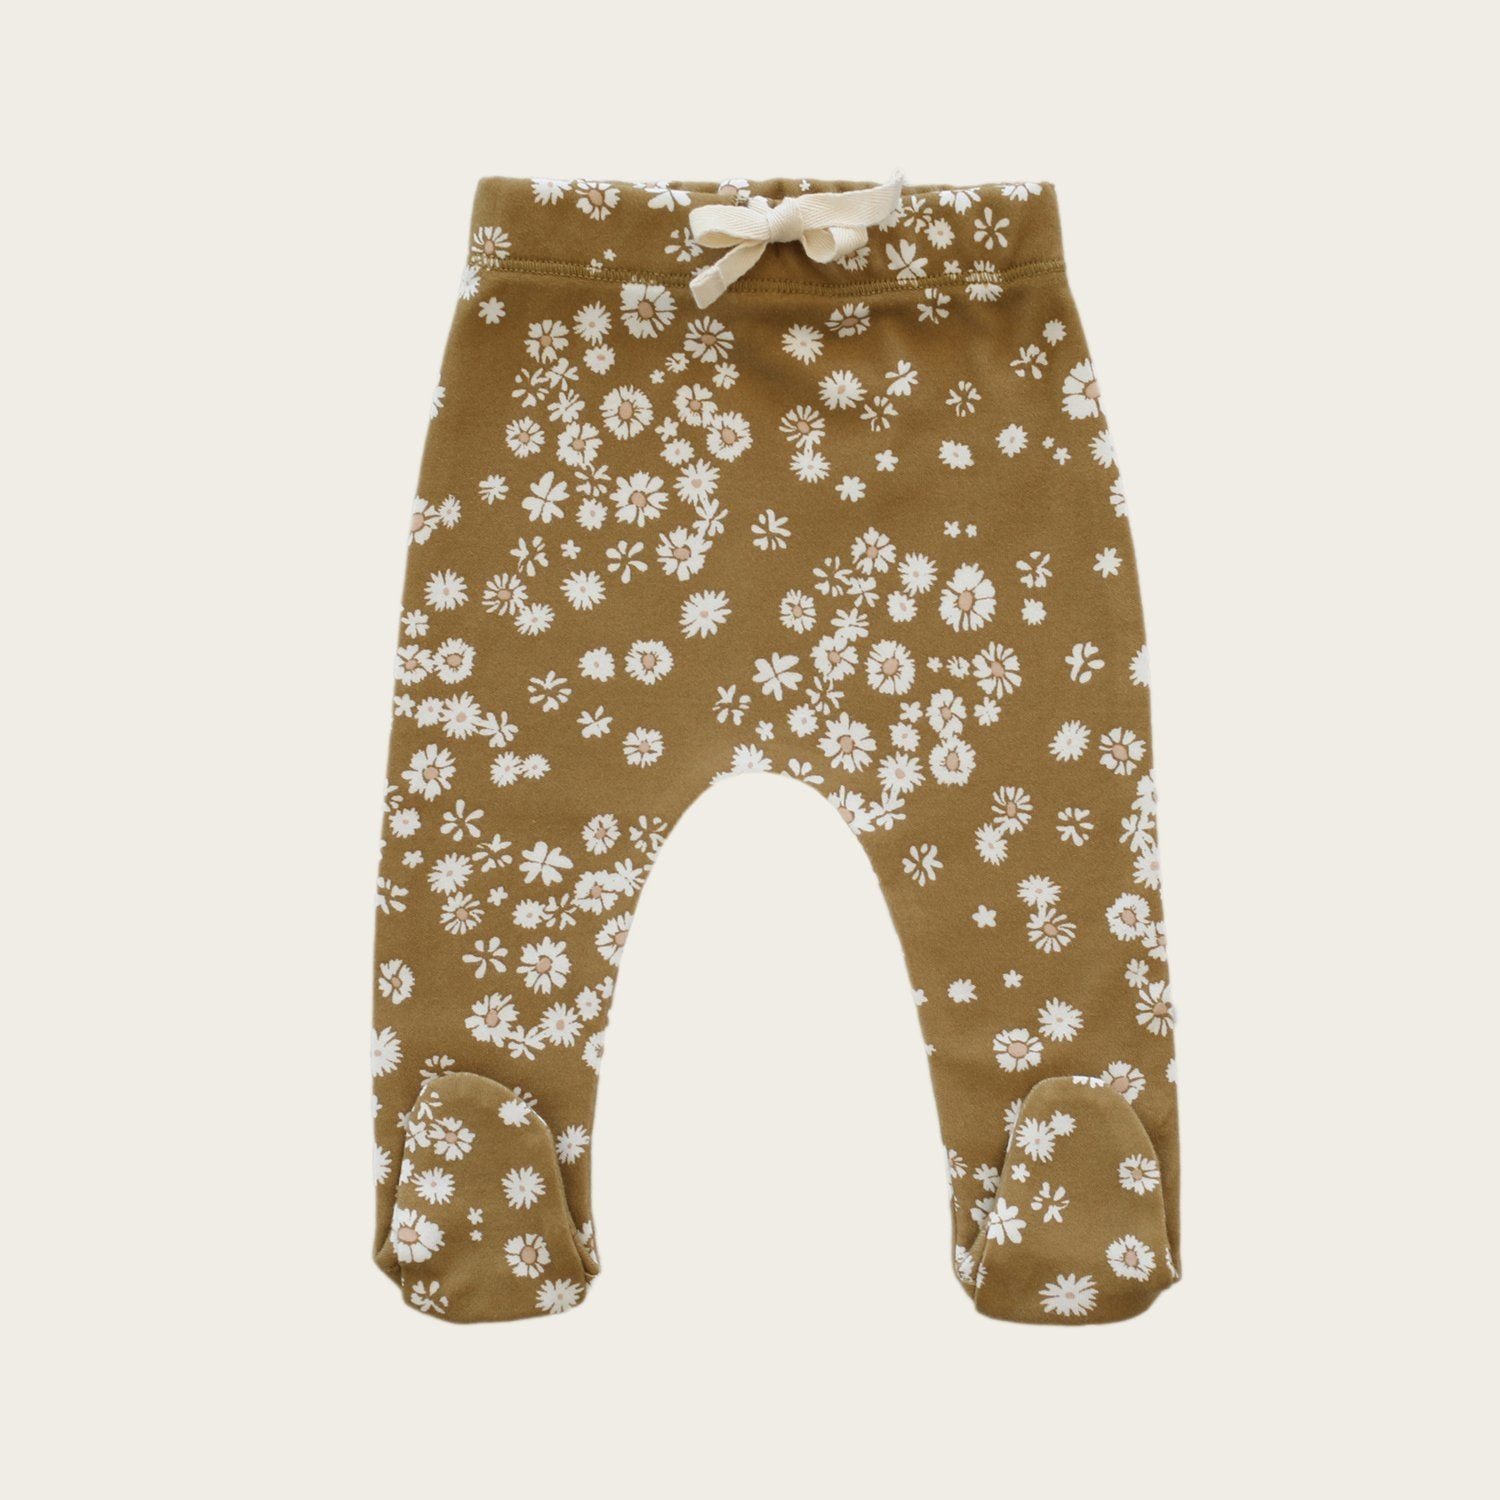 Daisy Floral Pants